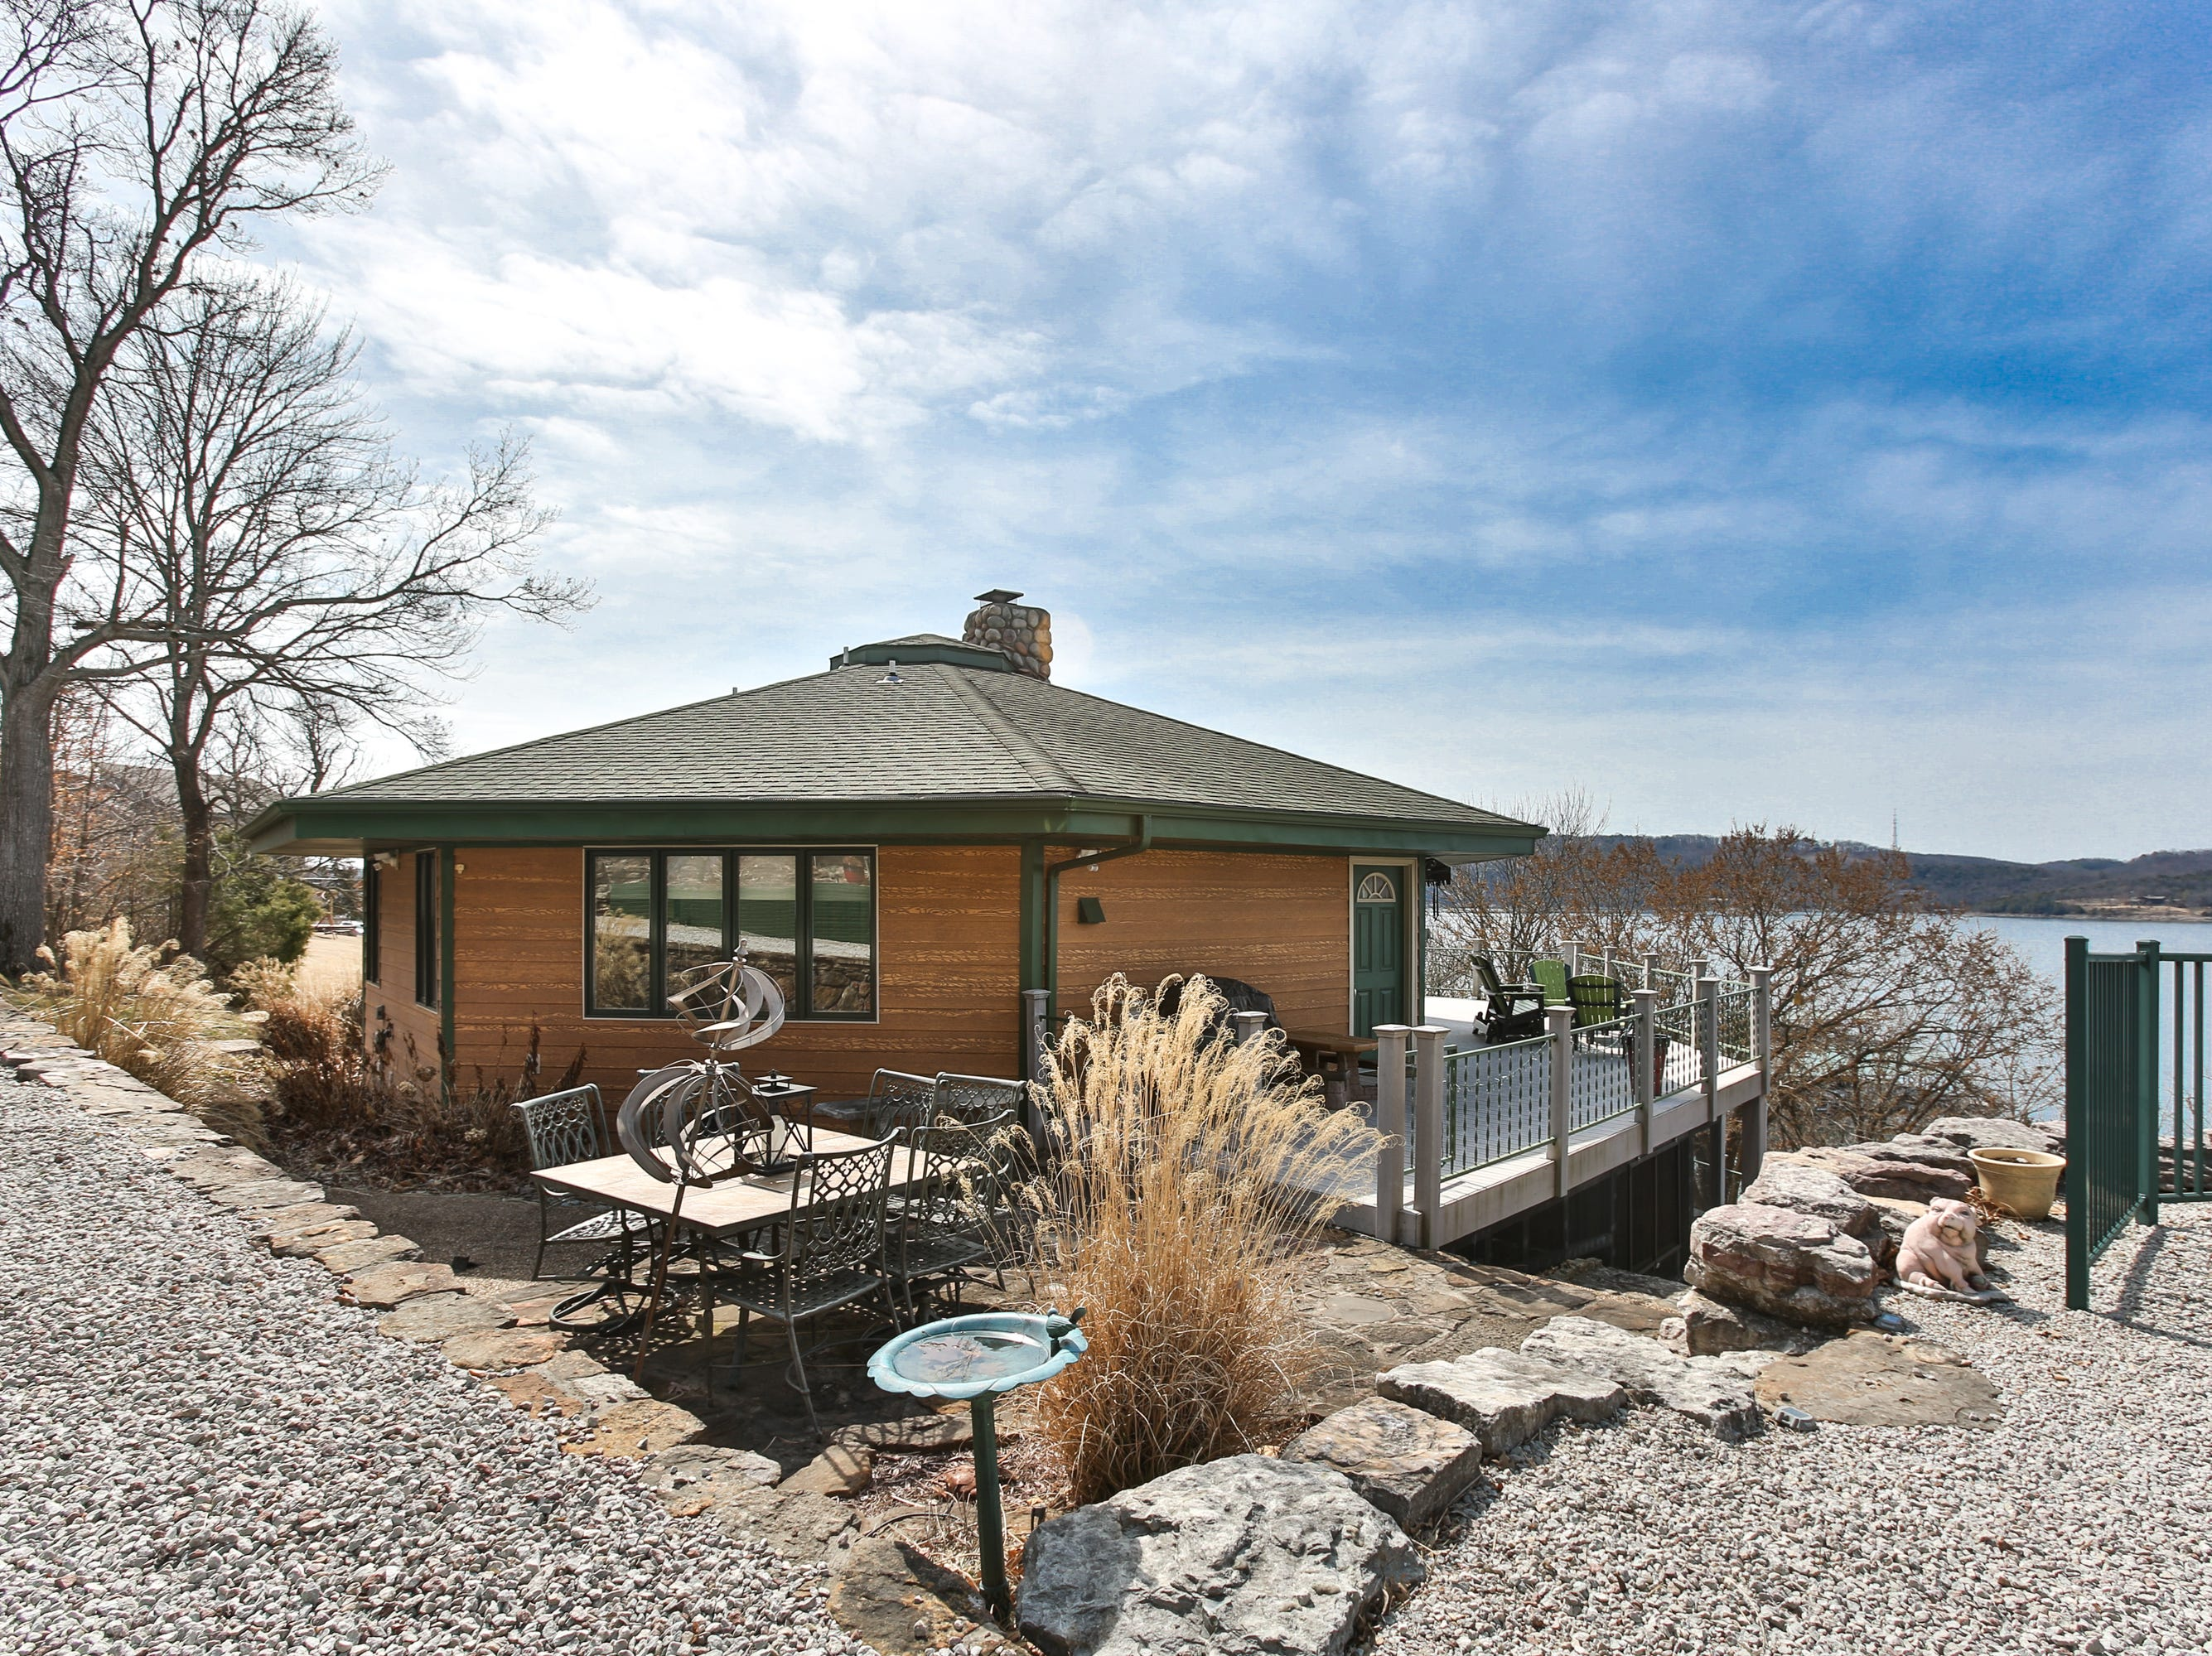 The Kembells found the perfect lake home for their retirement years at the end of a dead-end road on two lots overlooking Table Rock Lake. The home features every amenity they could hope for in less space than they thought they would need.